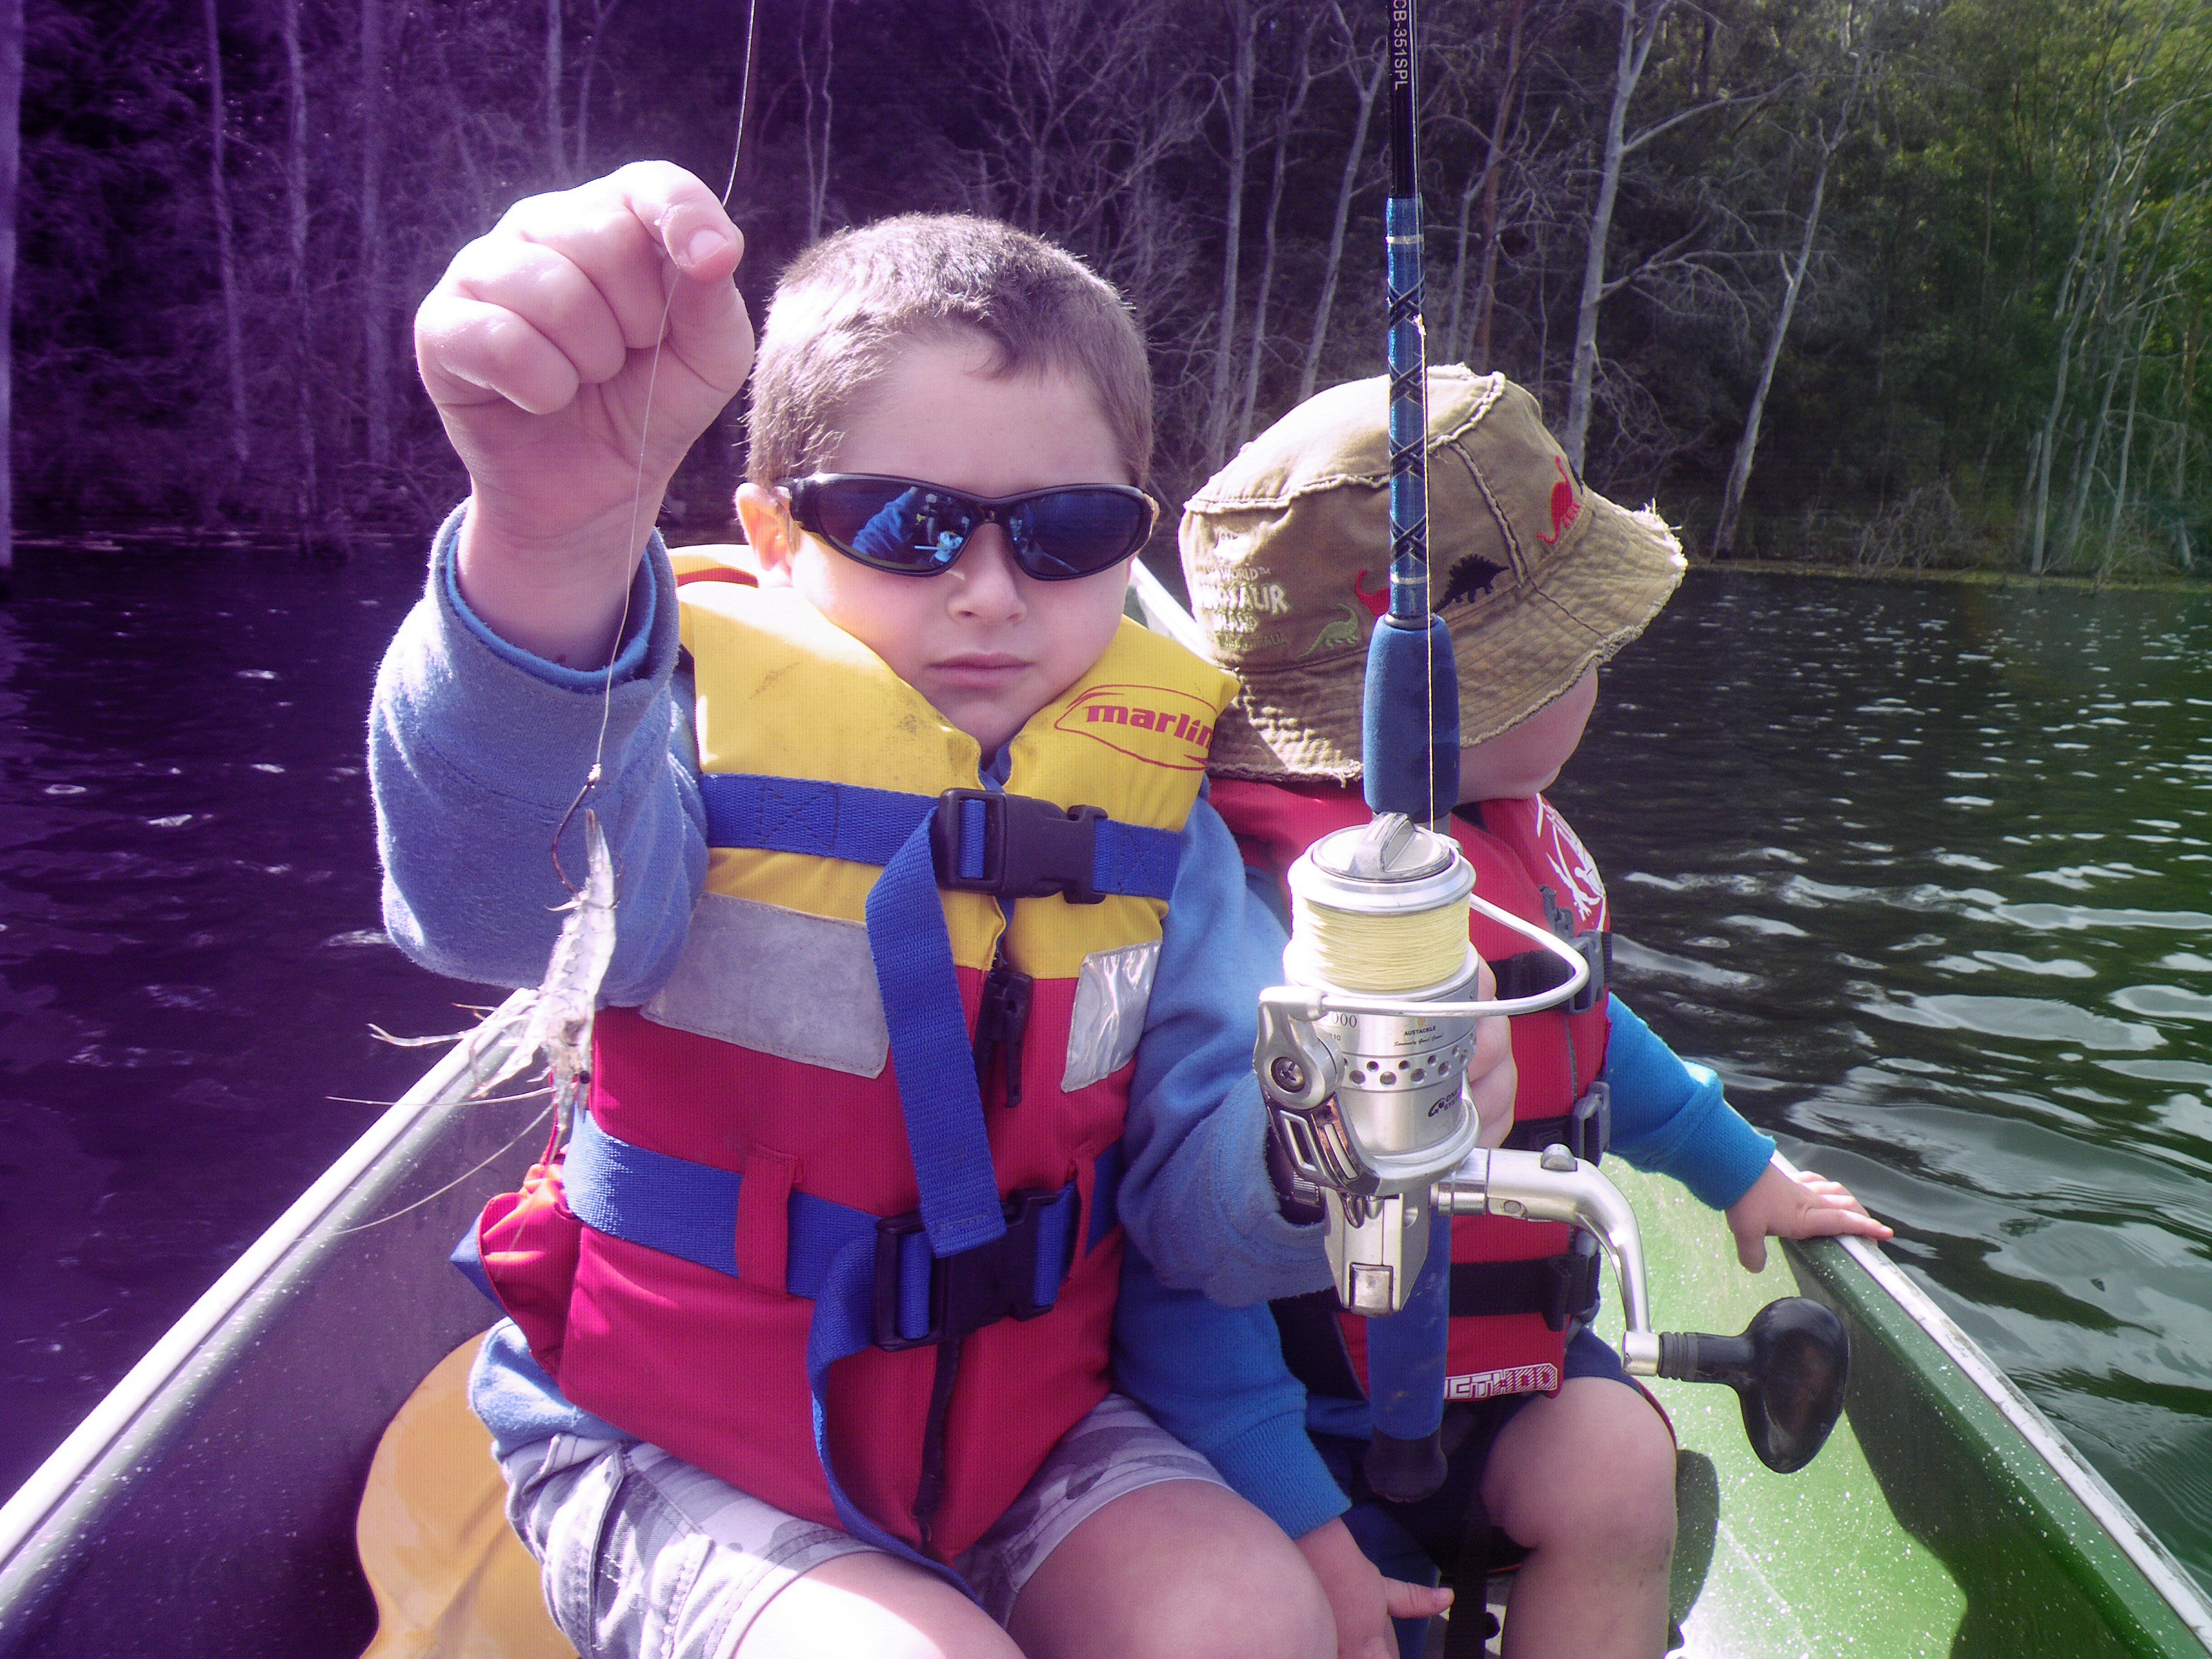 Live bait presented on an unweighted hook is child's play.